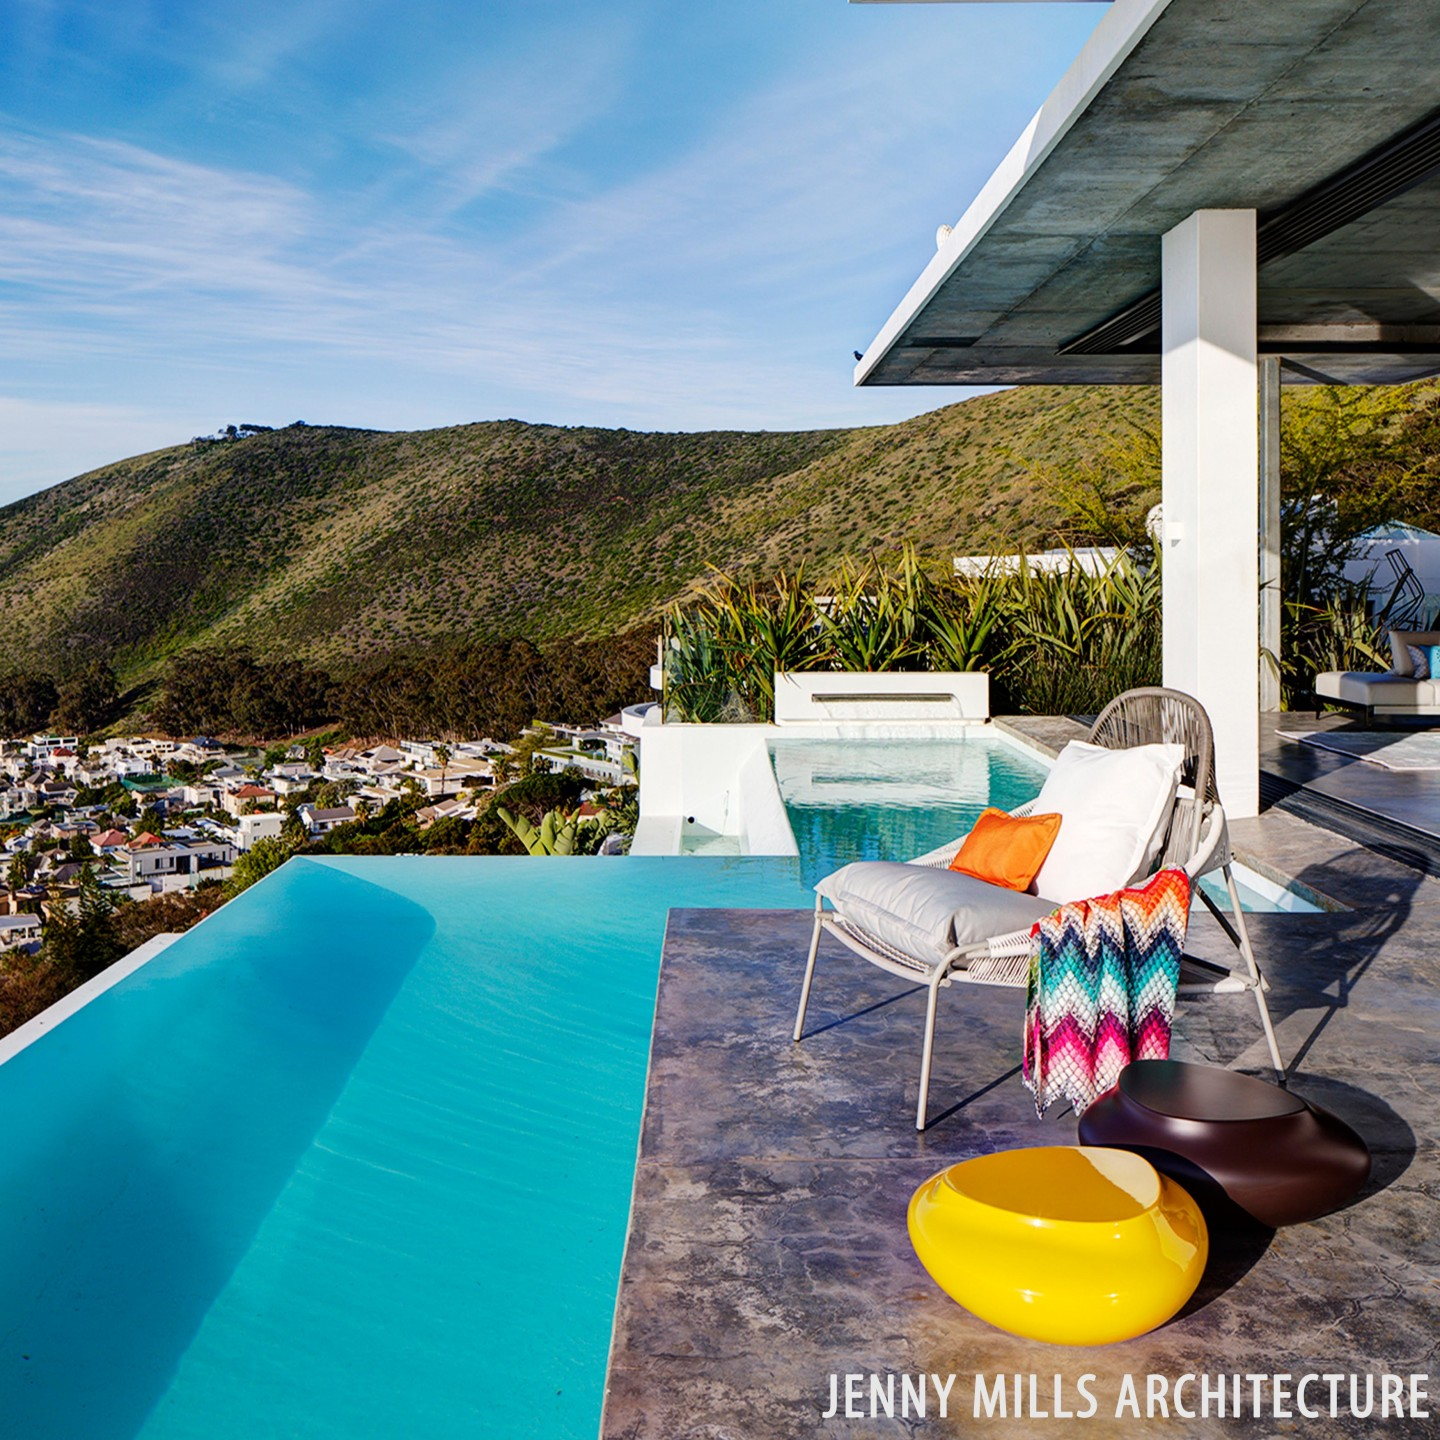 Jenny Mills' Tips for Pools and Patios